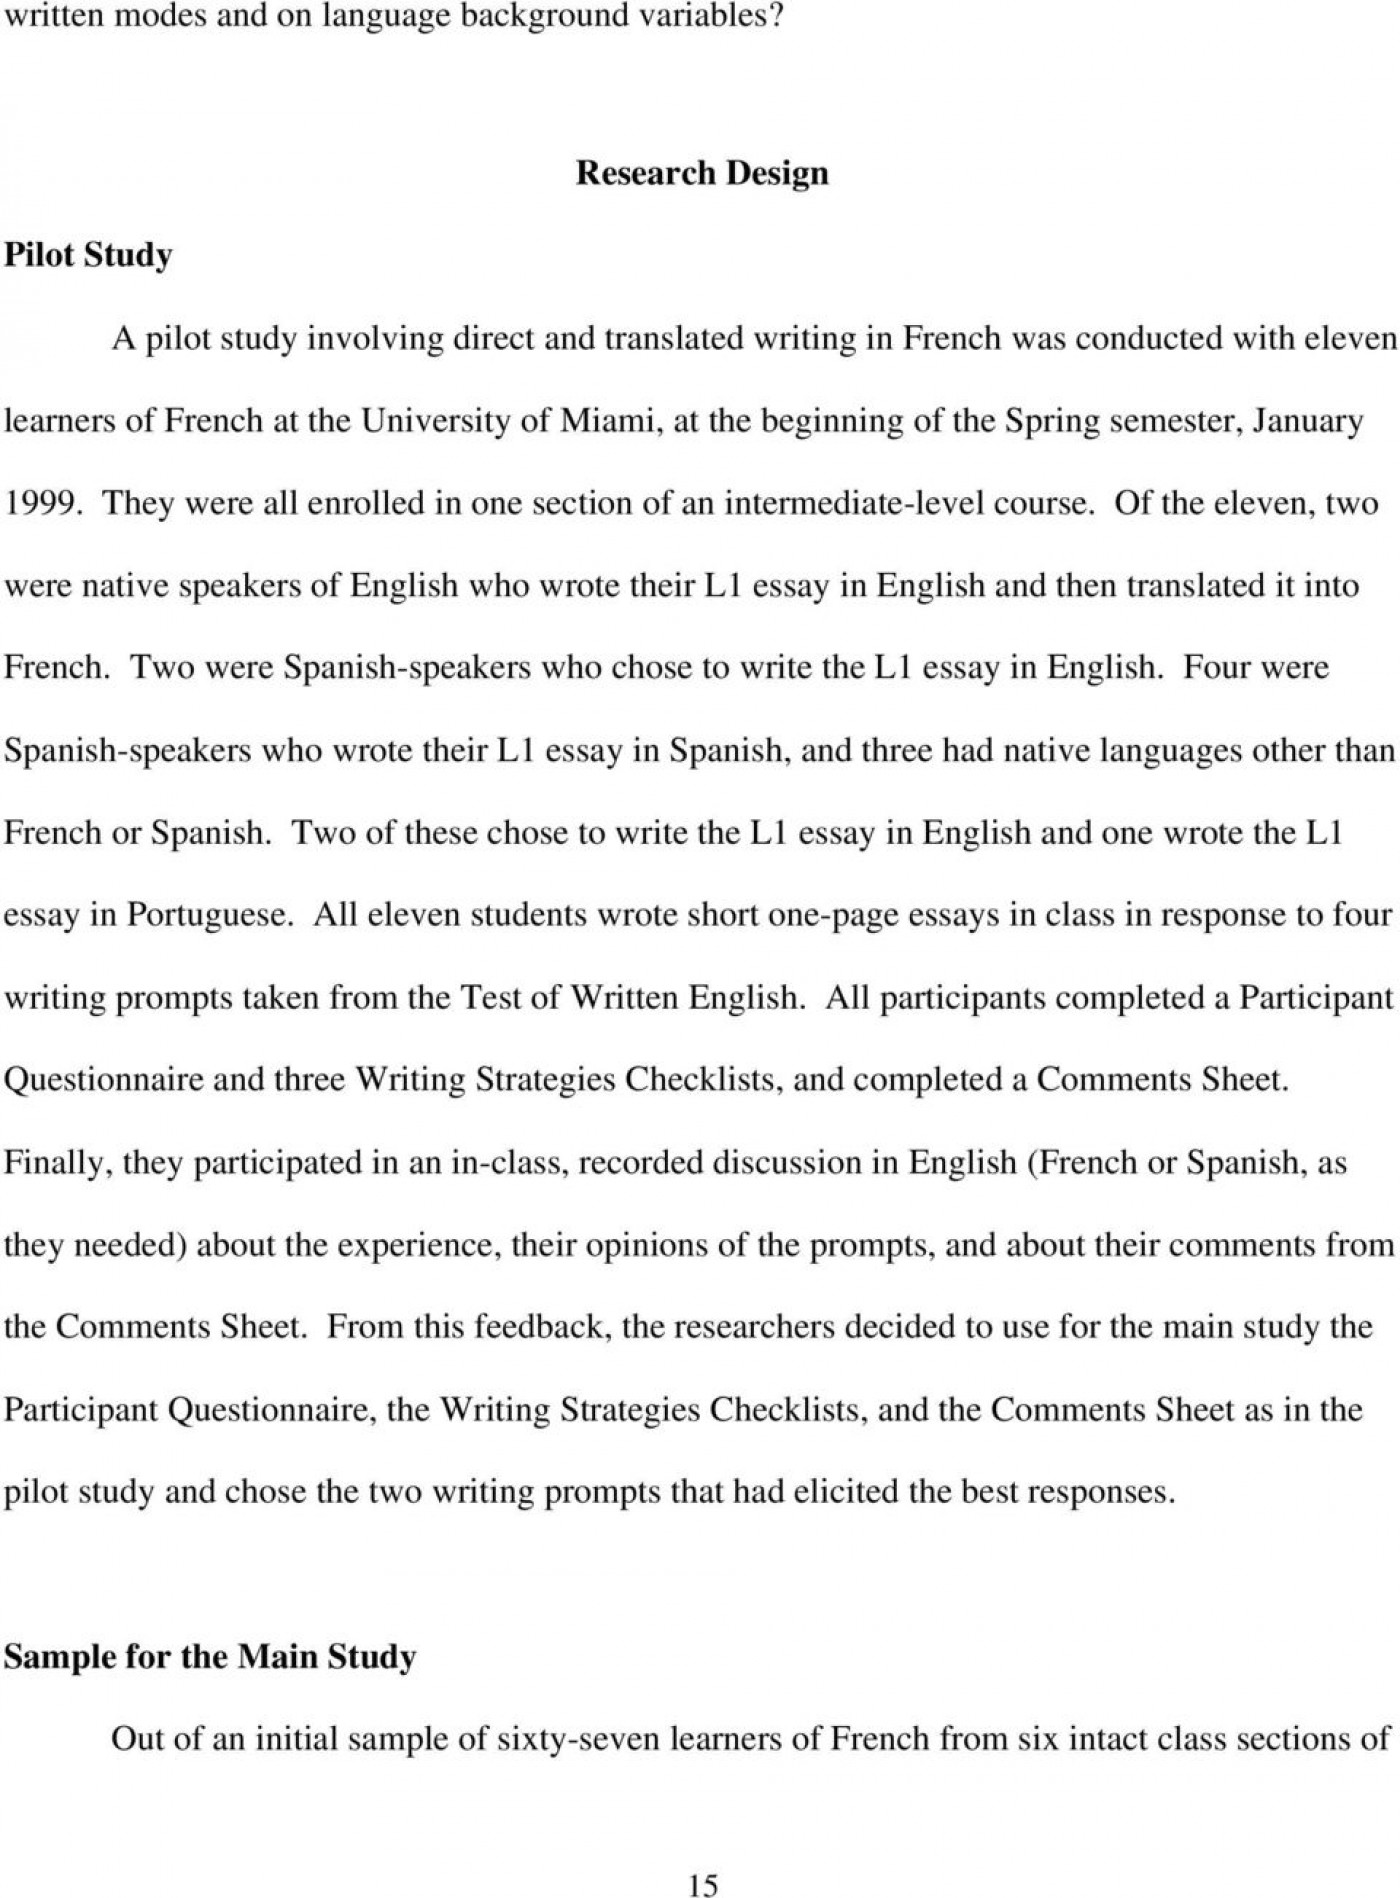 002 Essay Example In Spanish Direct Vs Translated Writing What Students Do And The Google Translate Pa Write Your My Teaching Essays Phrases How To An About Yourself Unbelievable On India Language Vacation 1400